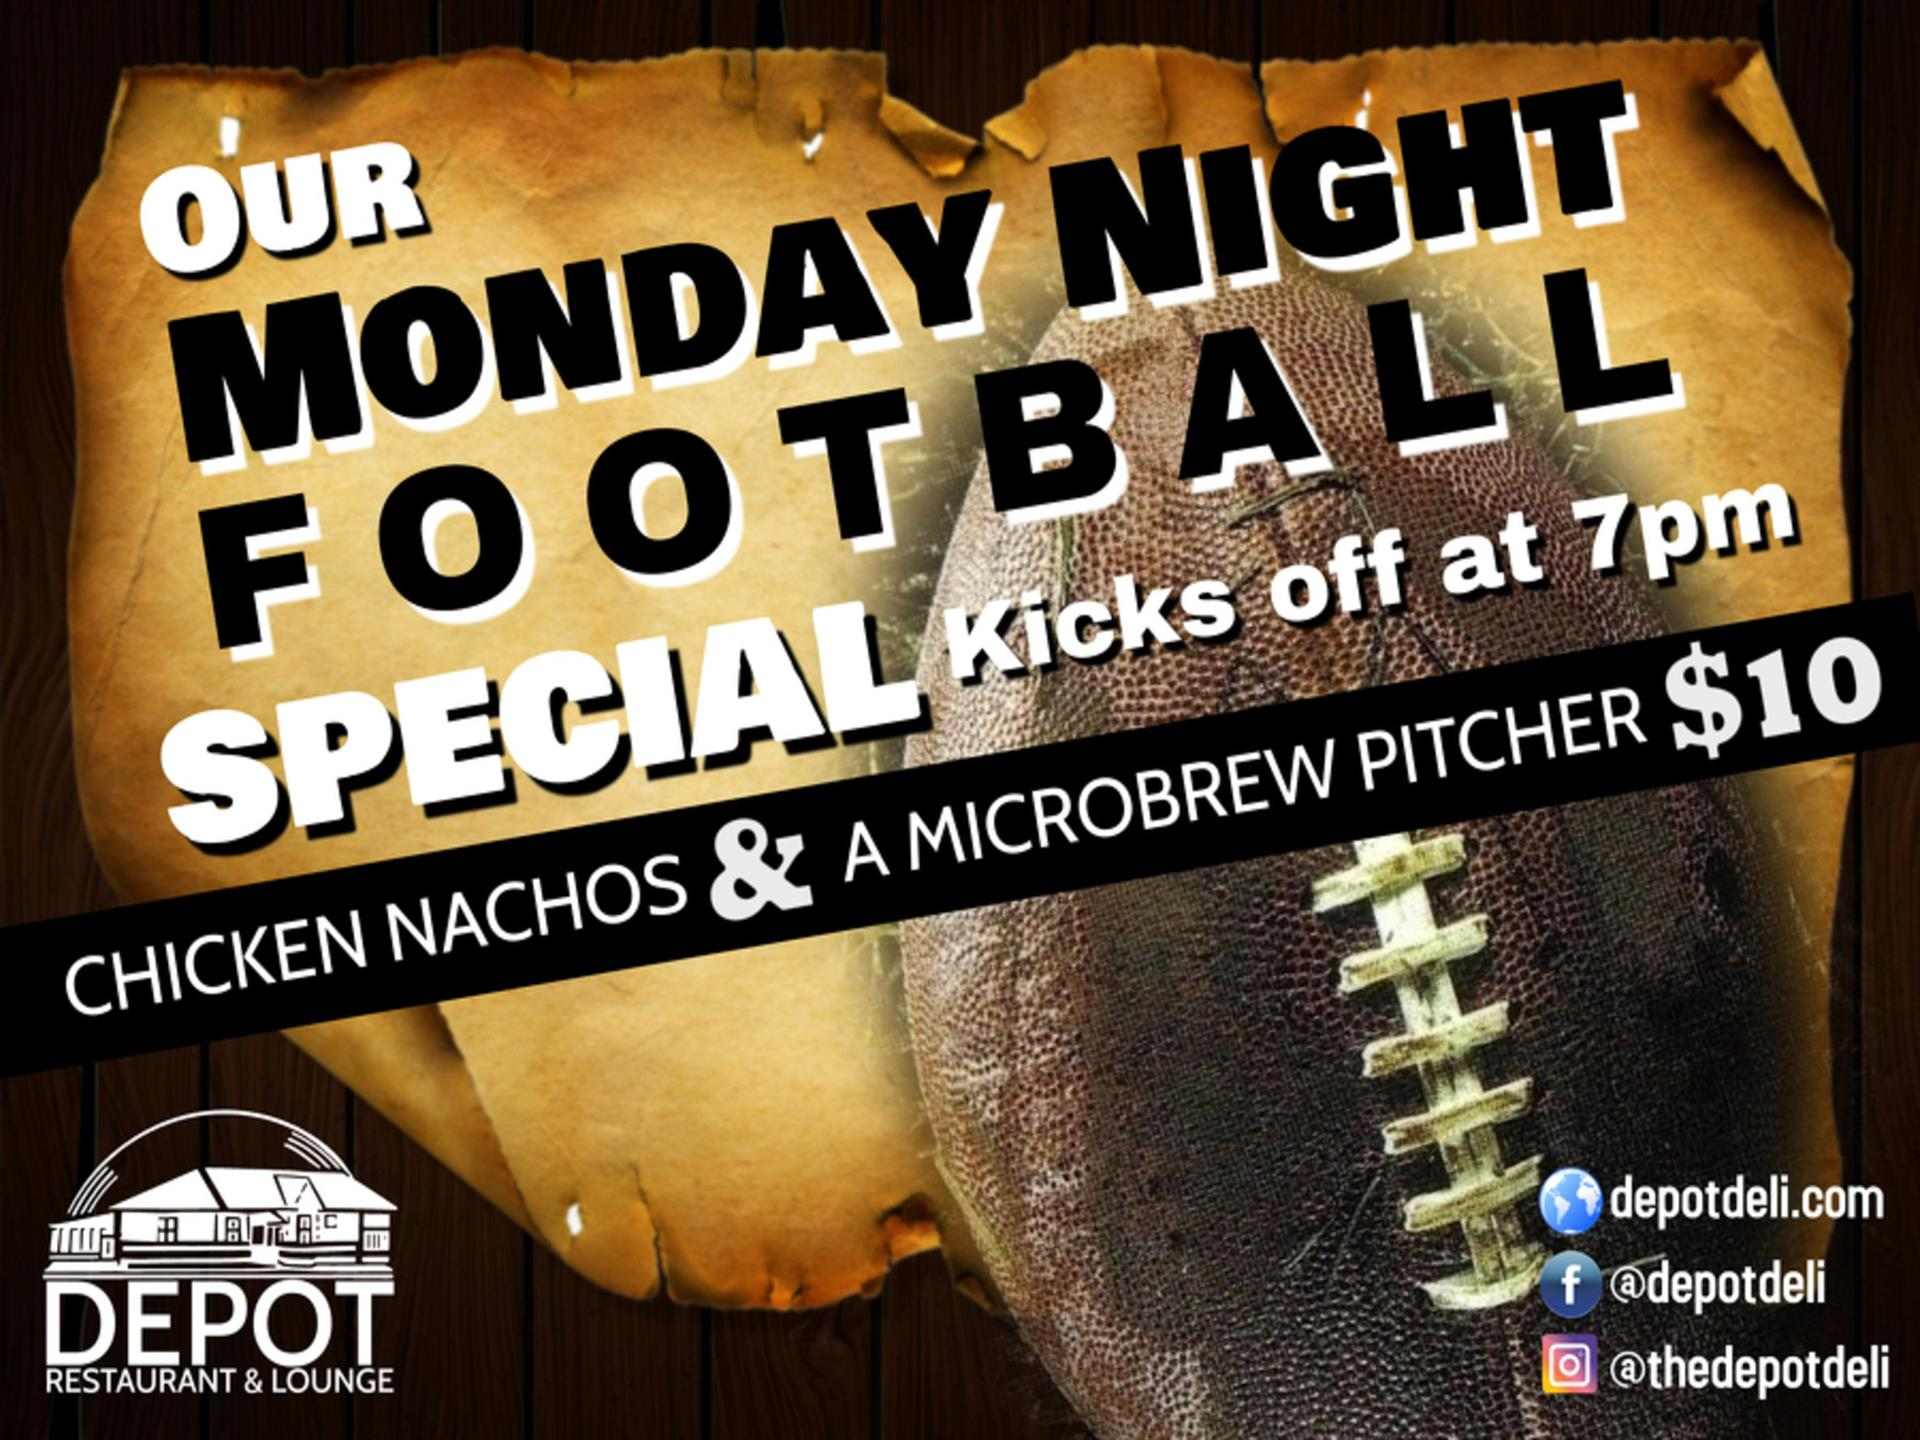 Monday Night Football Special.jpg